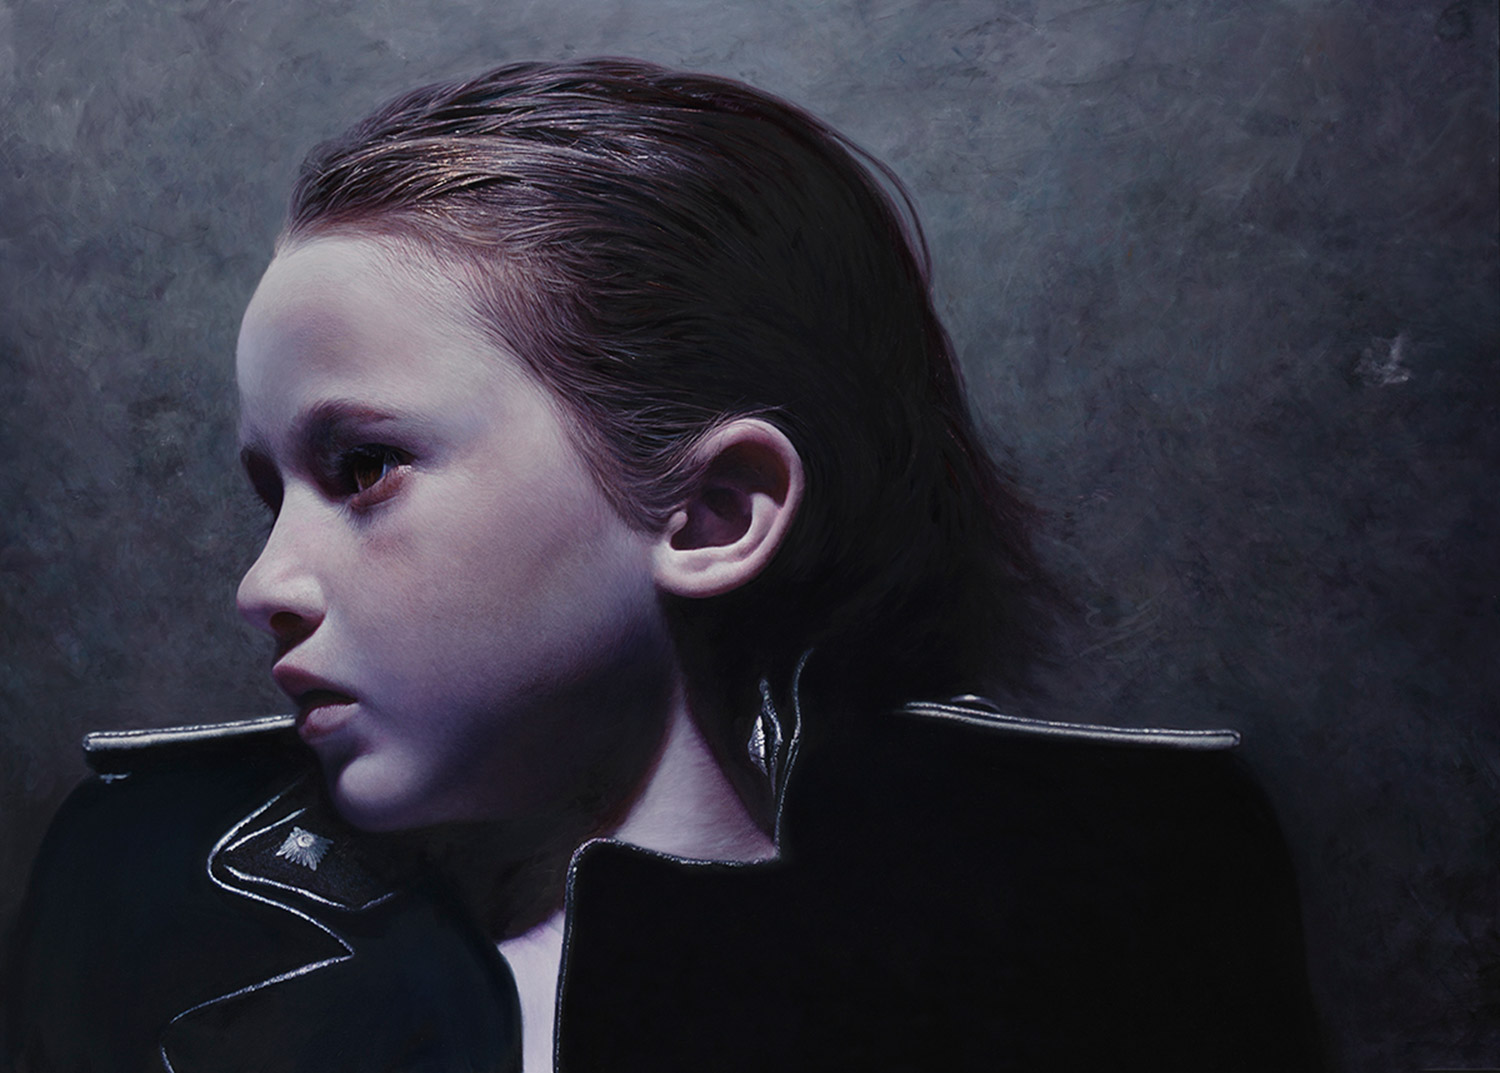 Gottfried Helnwein - The Murmur of the Innocents 18